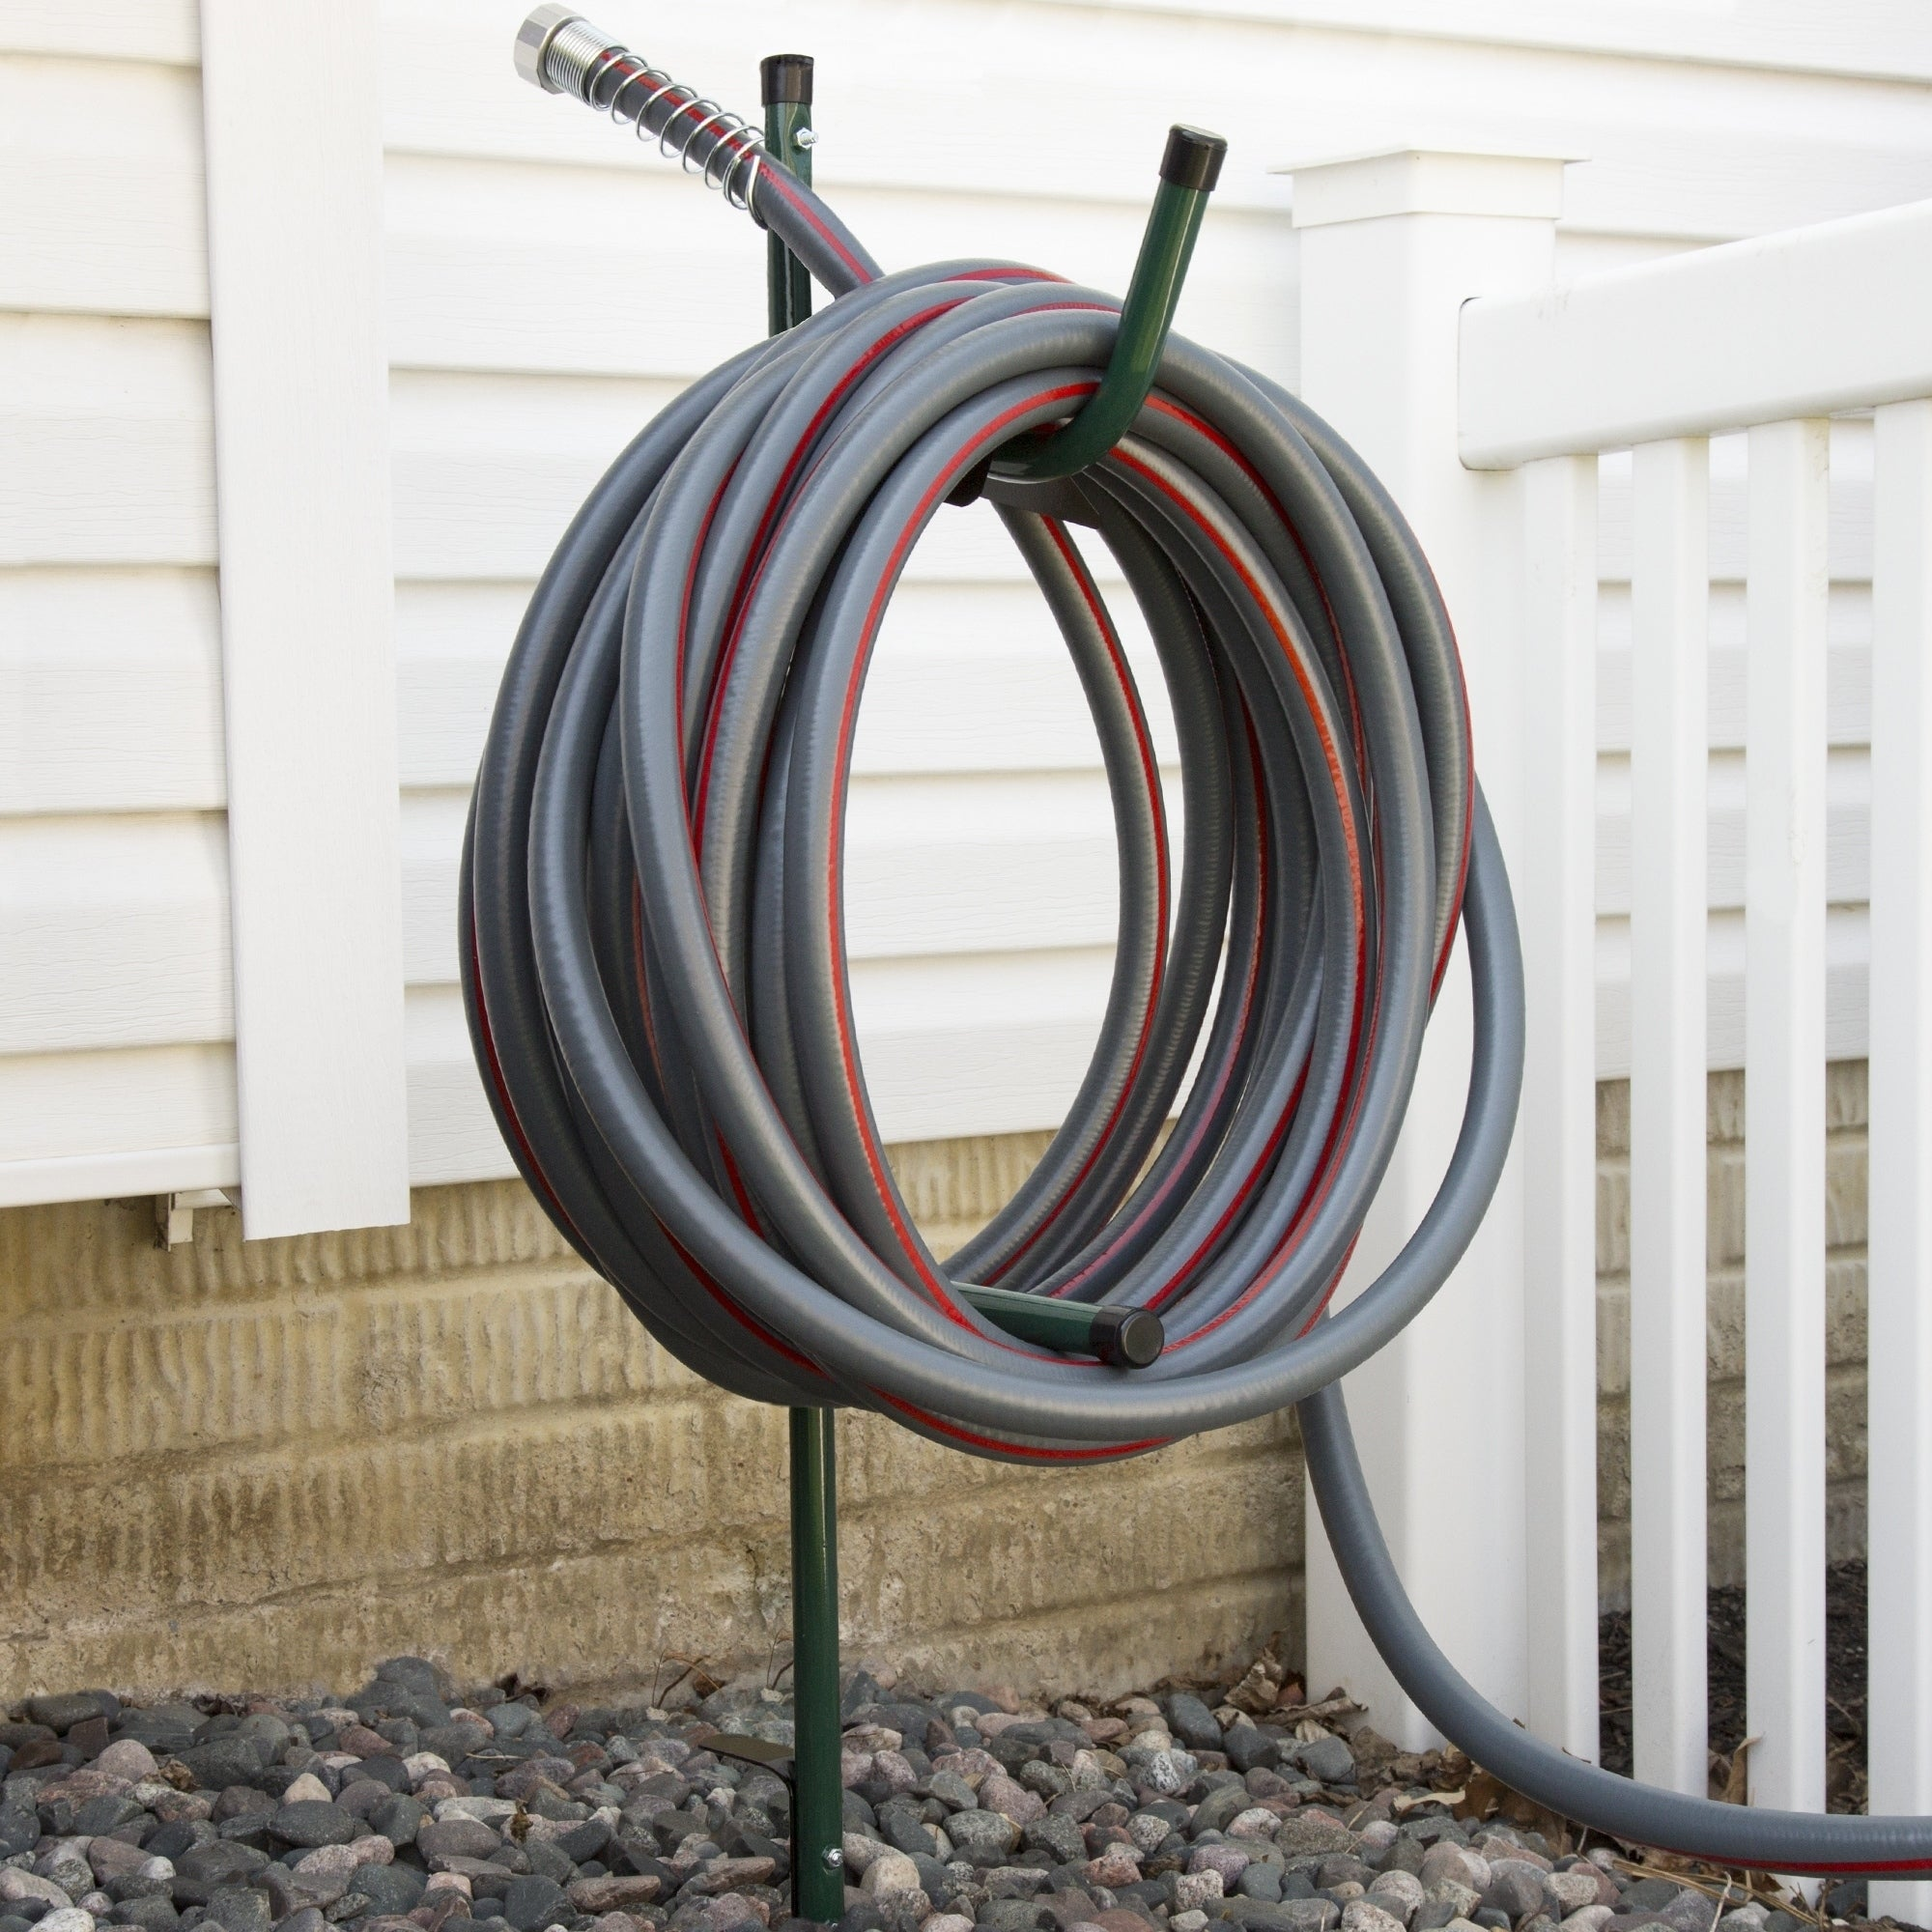 Shop Garden Hose Holder Caddy  Easy Install Outdoor Free Standing Metal Rack  For Hose Management By Stalwart   Free Shipping On Orders Over $45 ...